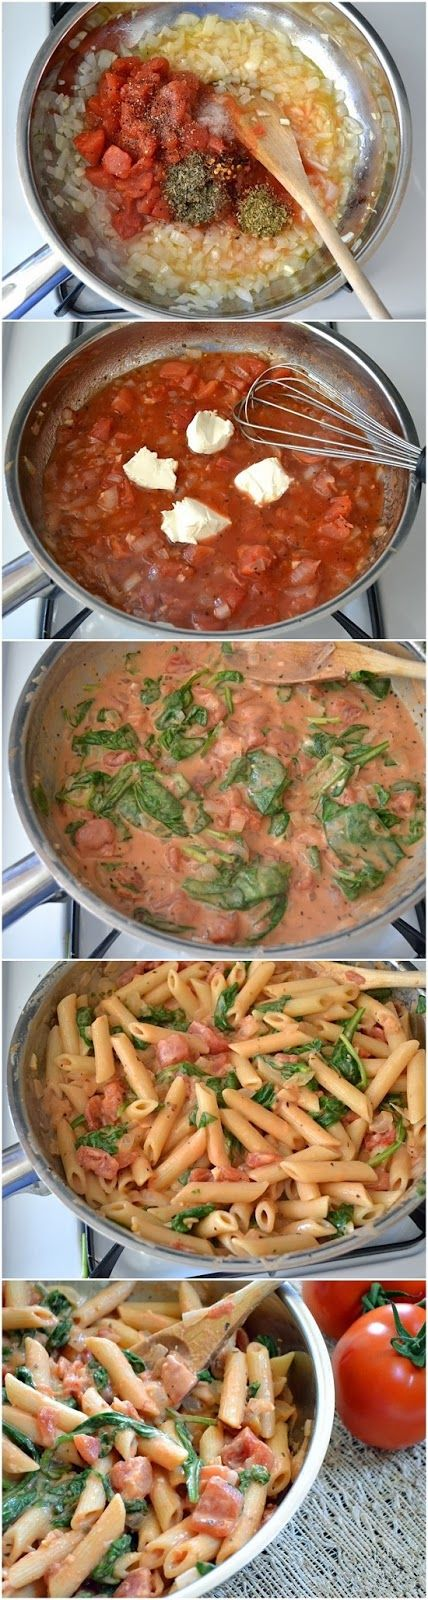 Yummy Recipes: Creamy Tomato And Spinach Pasta recipe